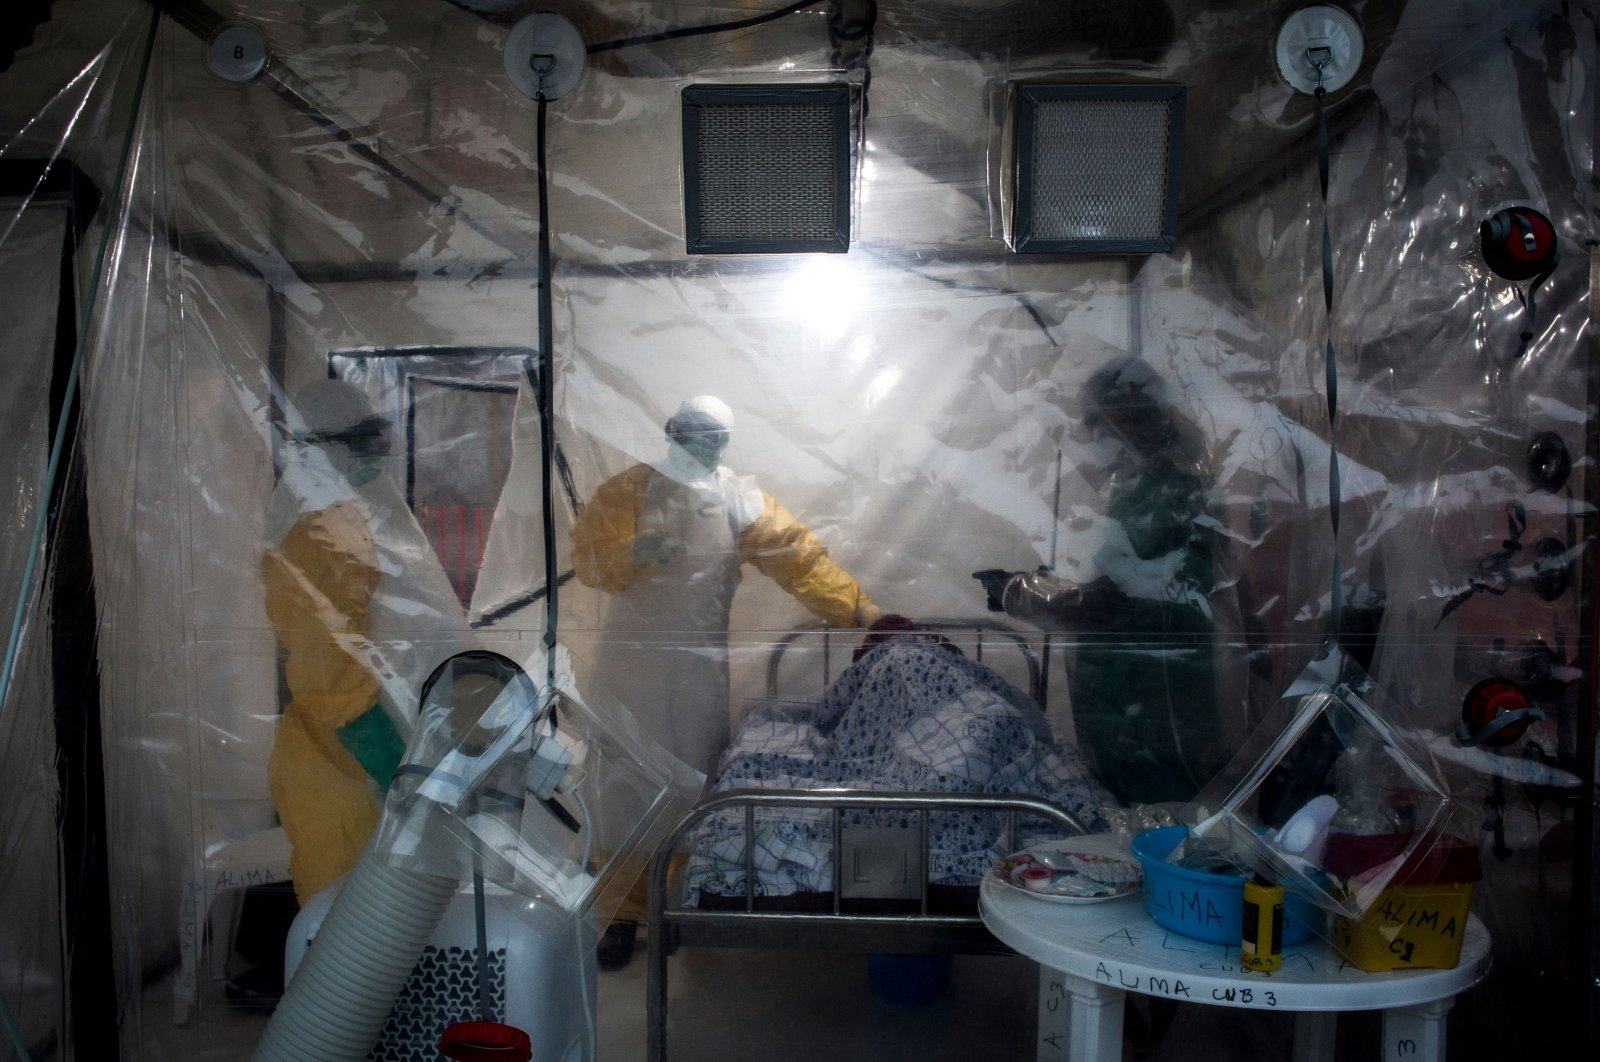 Three medical workers check on an Ebola patient in a biosecure emergency care unit (CUBE) in Beni, Democratic Republic of Congo, Aug. 15, 2018. (AFP Photo)